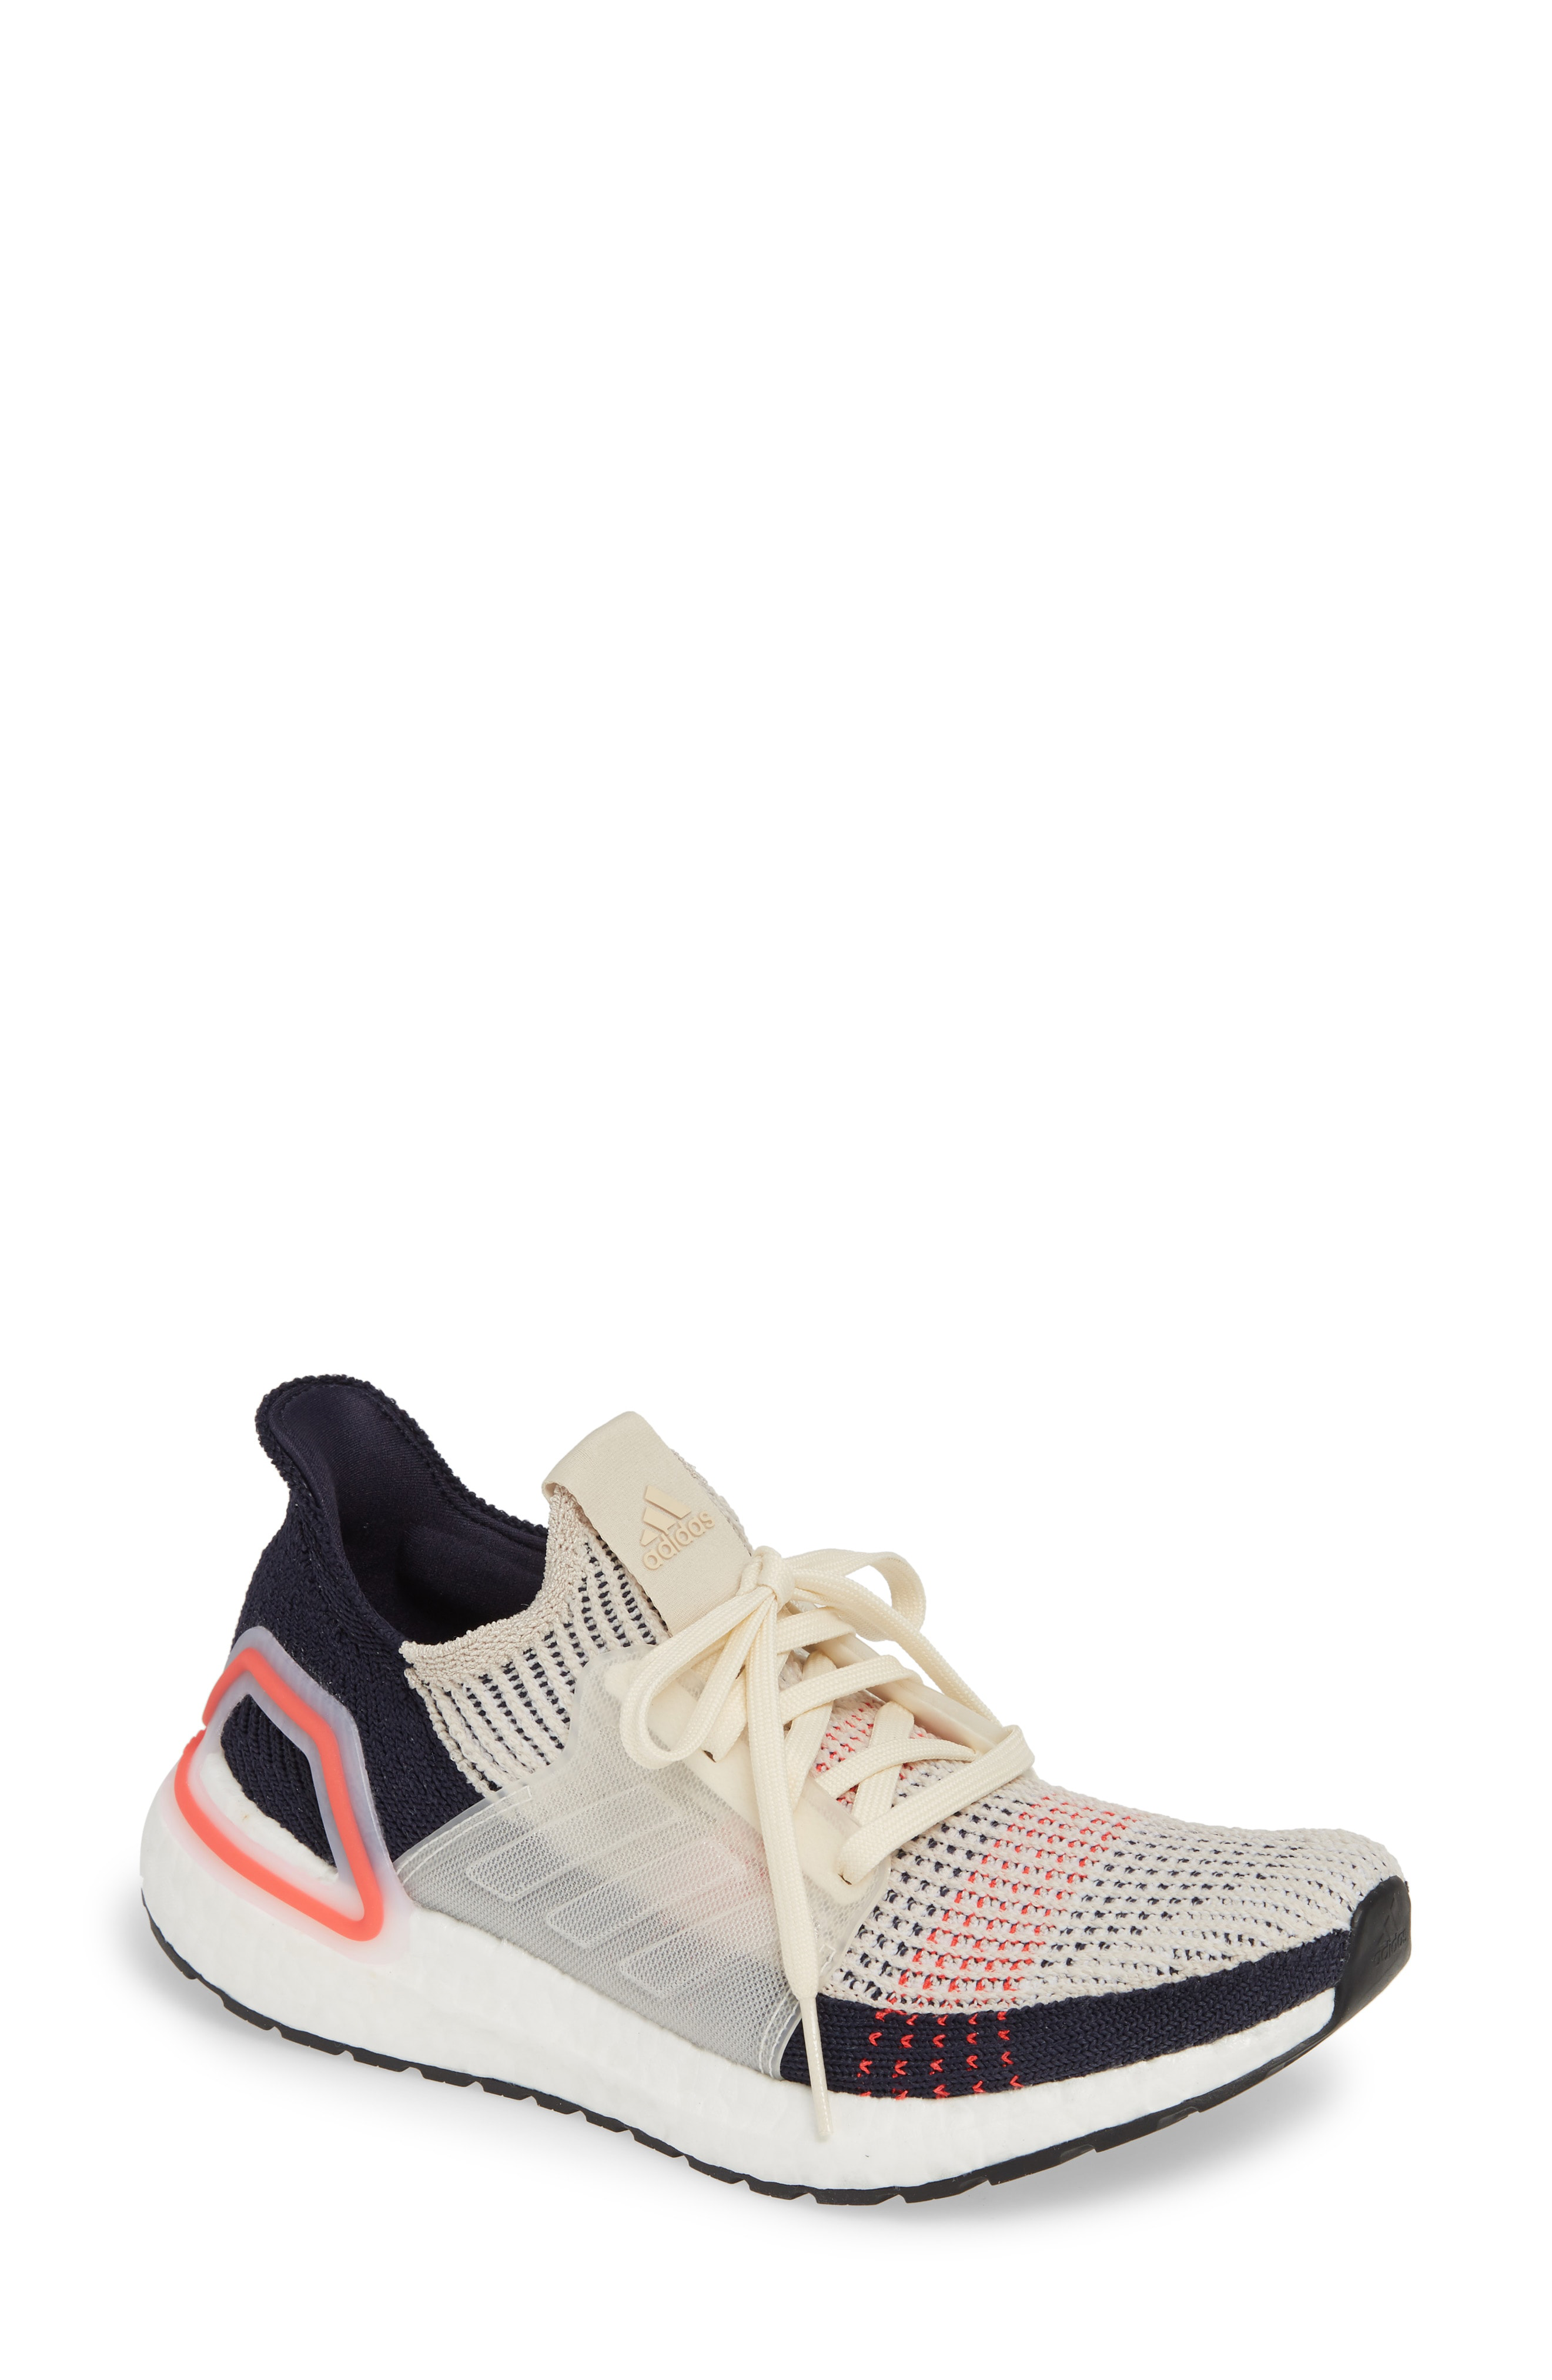 Lightweight comfort meets propulsive energy return in the next-generation  UltraBoost running shoe that pairs a soft knit upper and signature Boost ... 2ddb14eaf